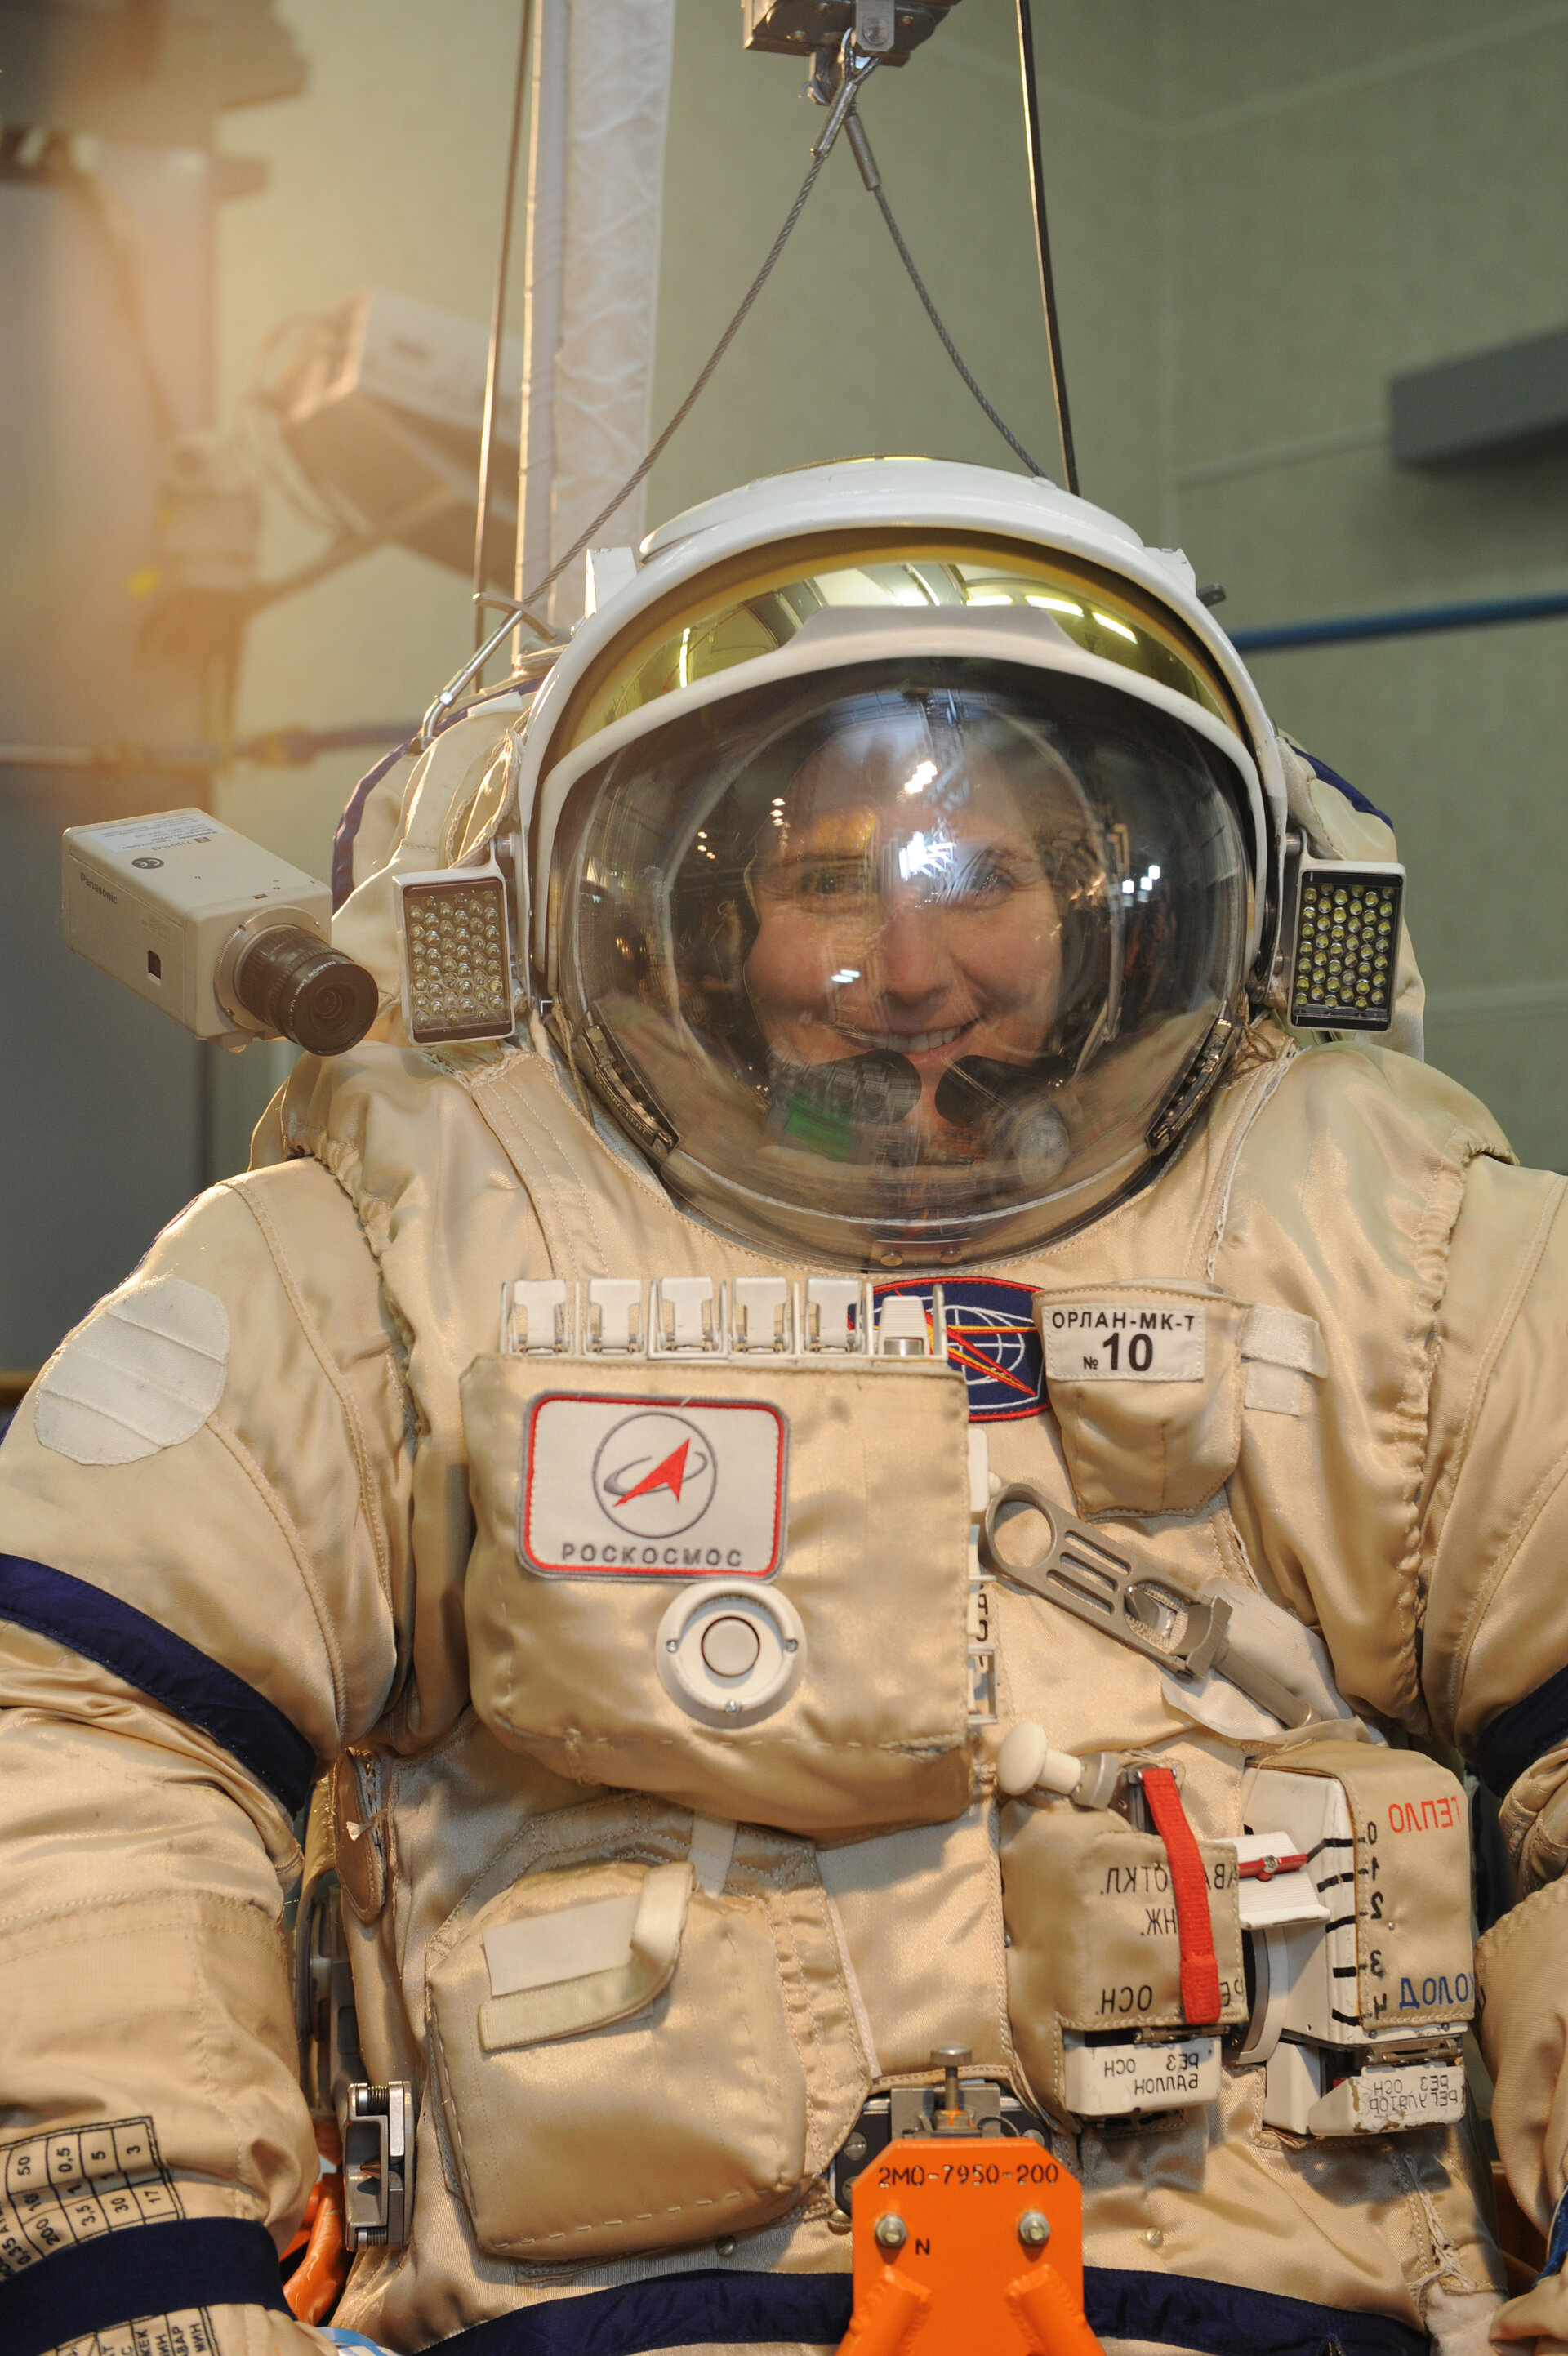 Spacewalk training